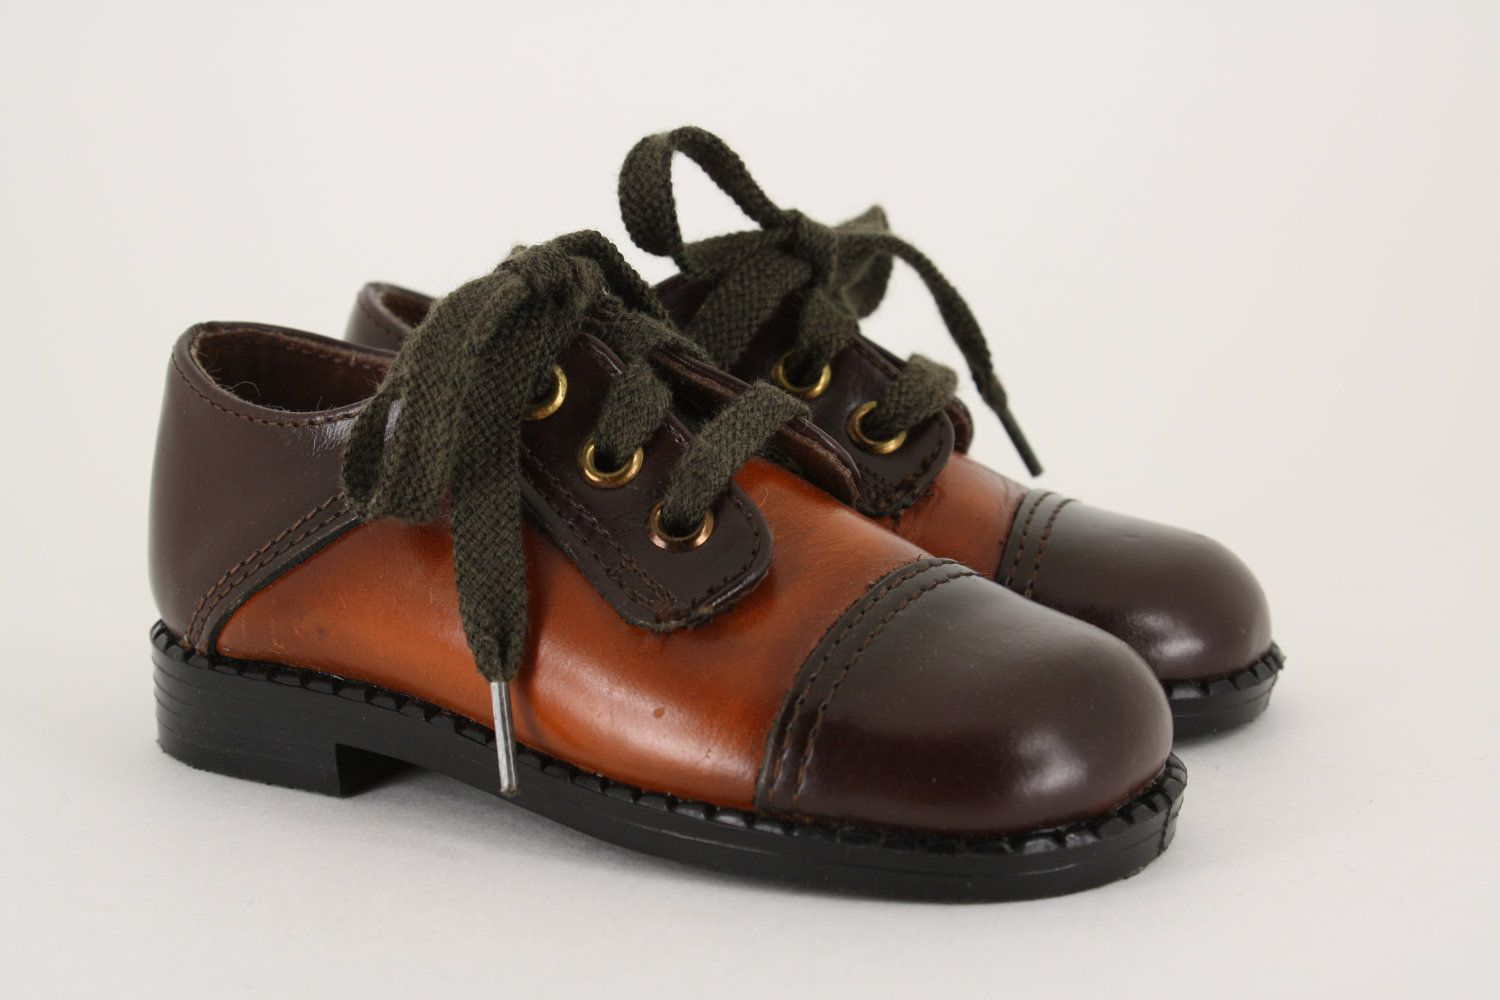 6f0a16221f7ac Vintage Brown Leather Oxford Saddle Shoes // Boys Size 10 US / 27 ...